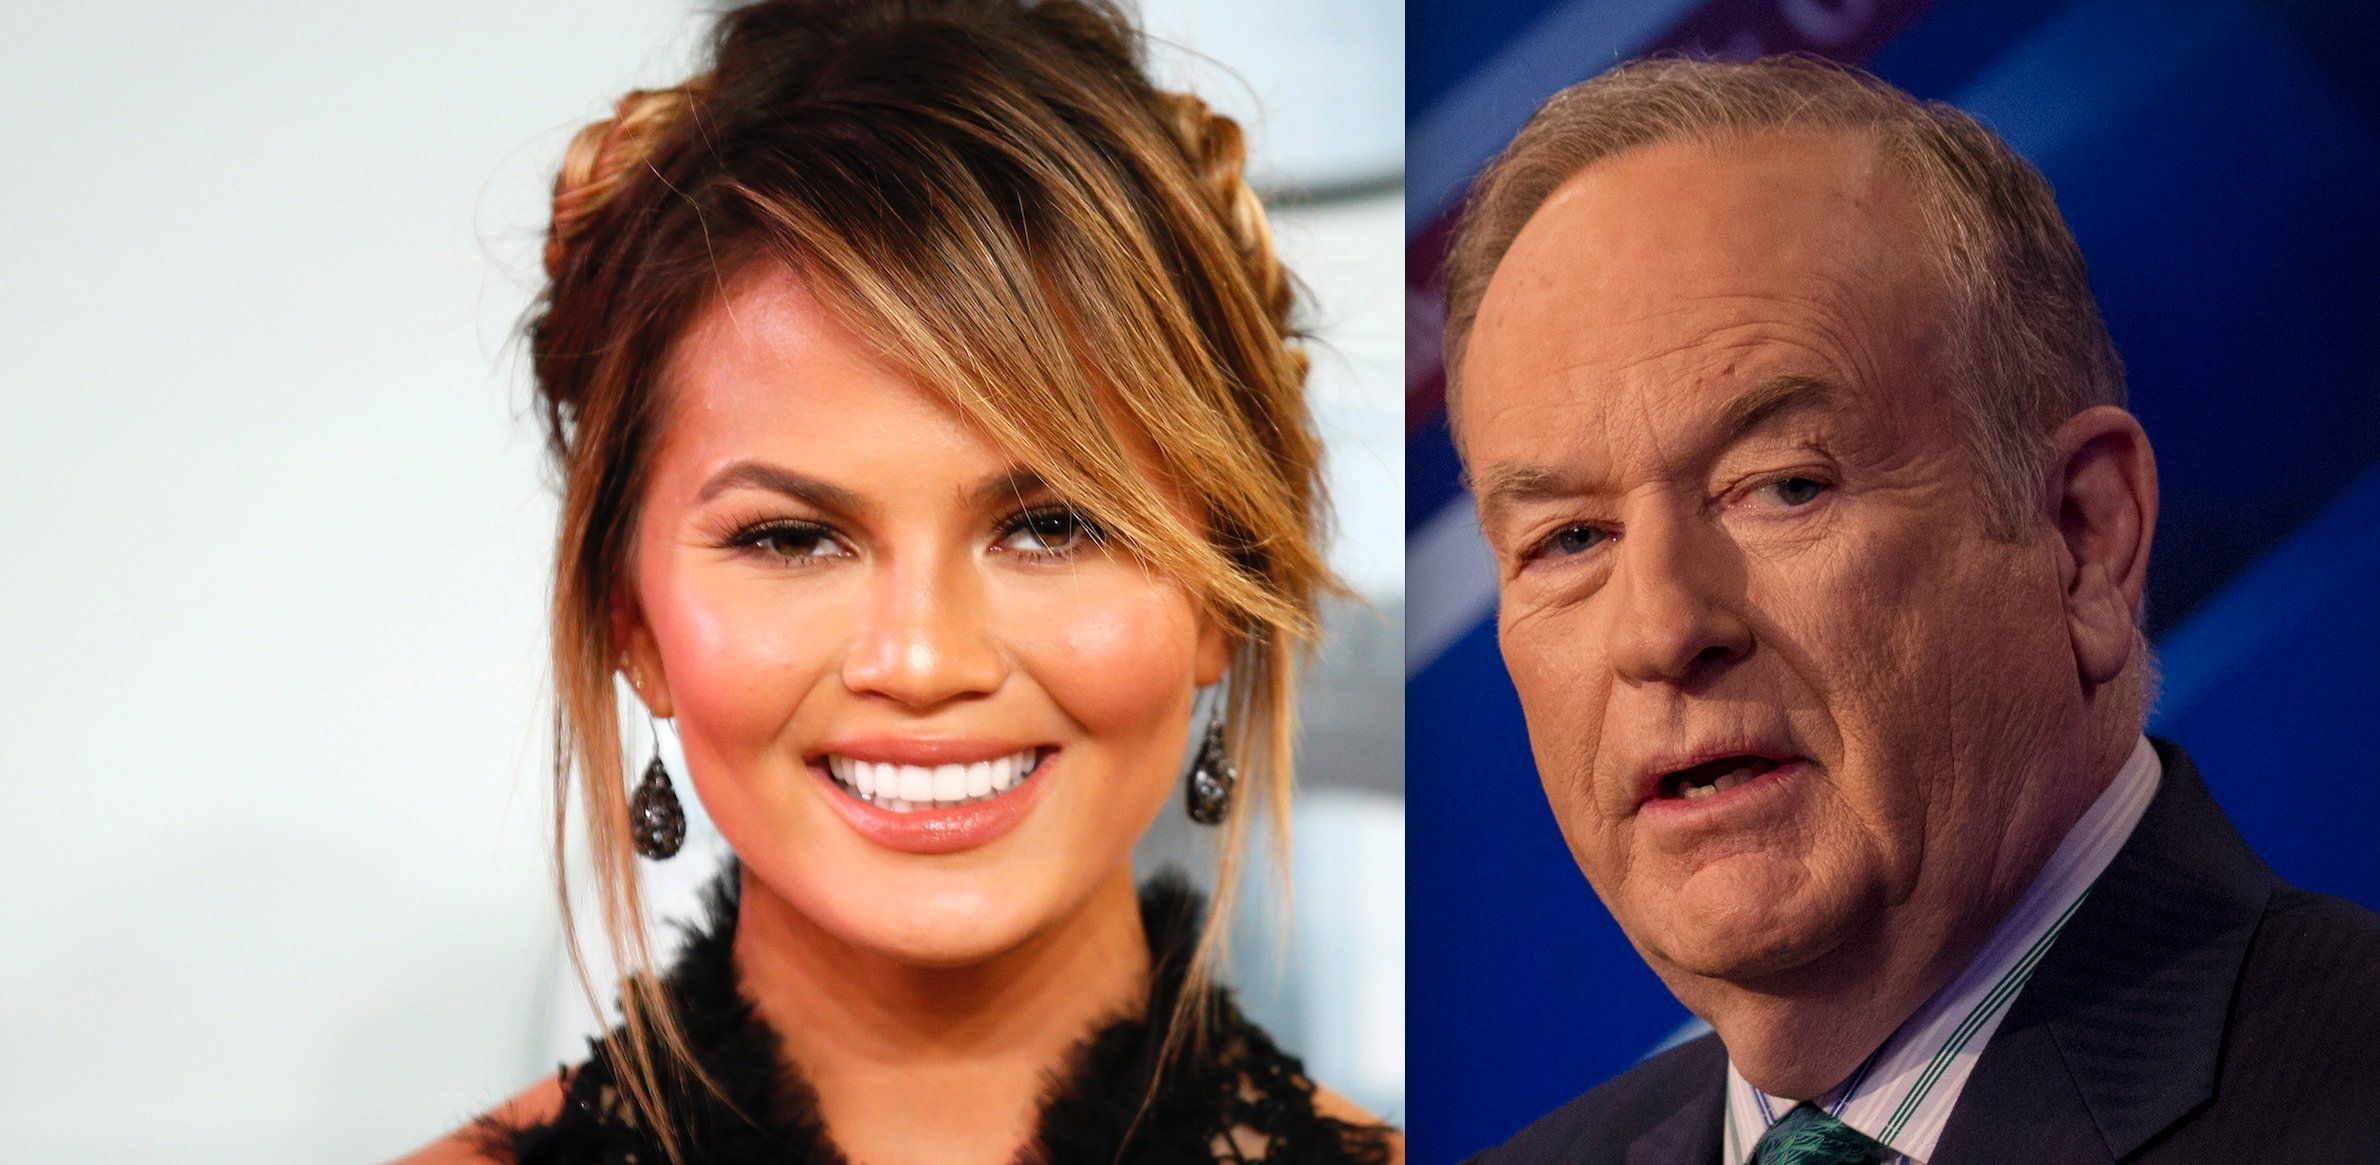 Chrissy Teigen Bill OReilly